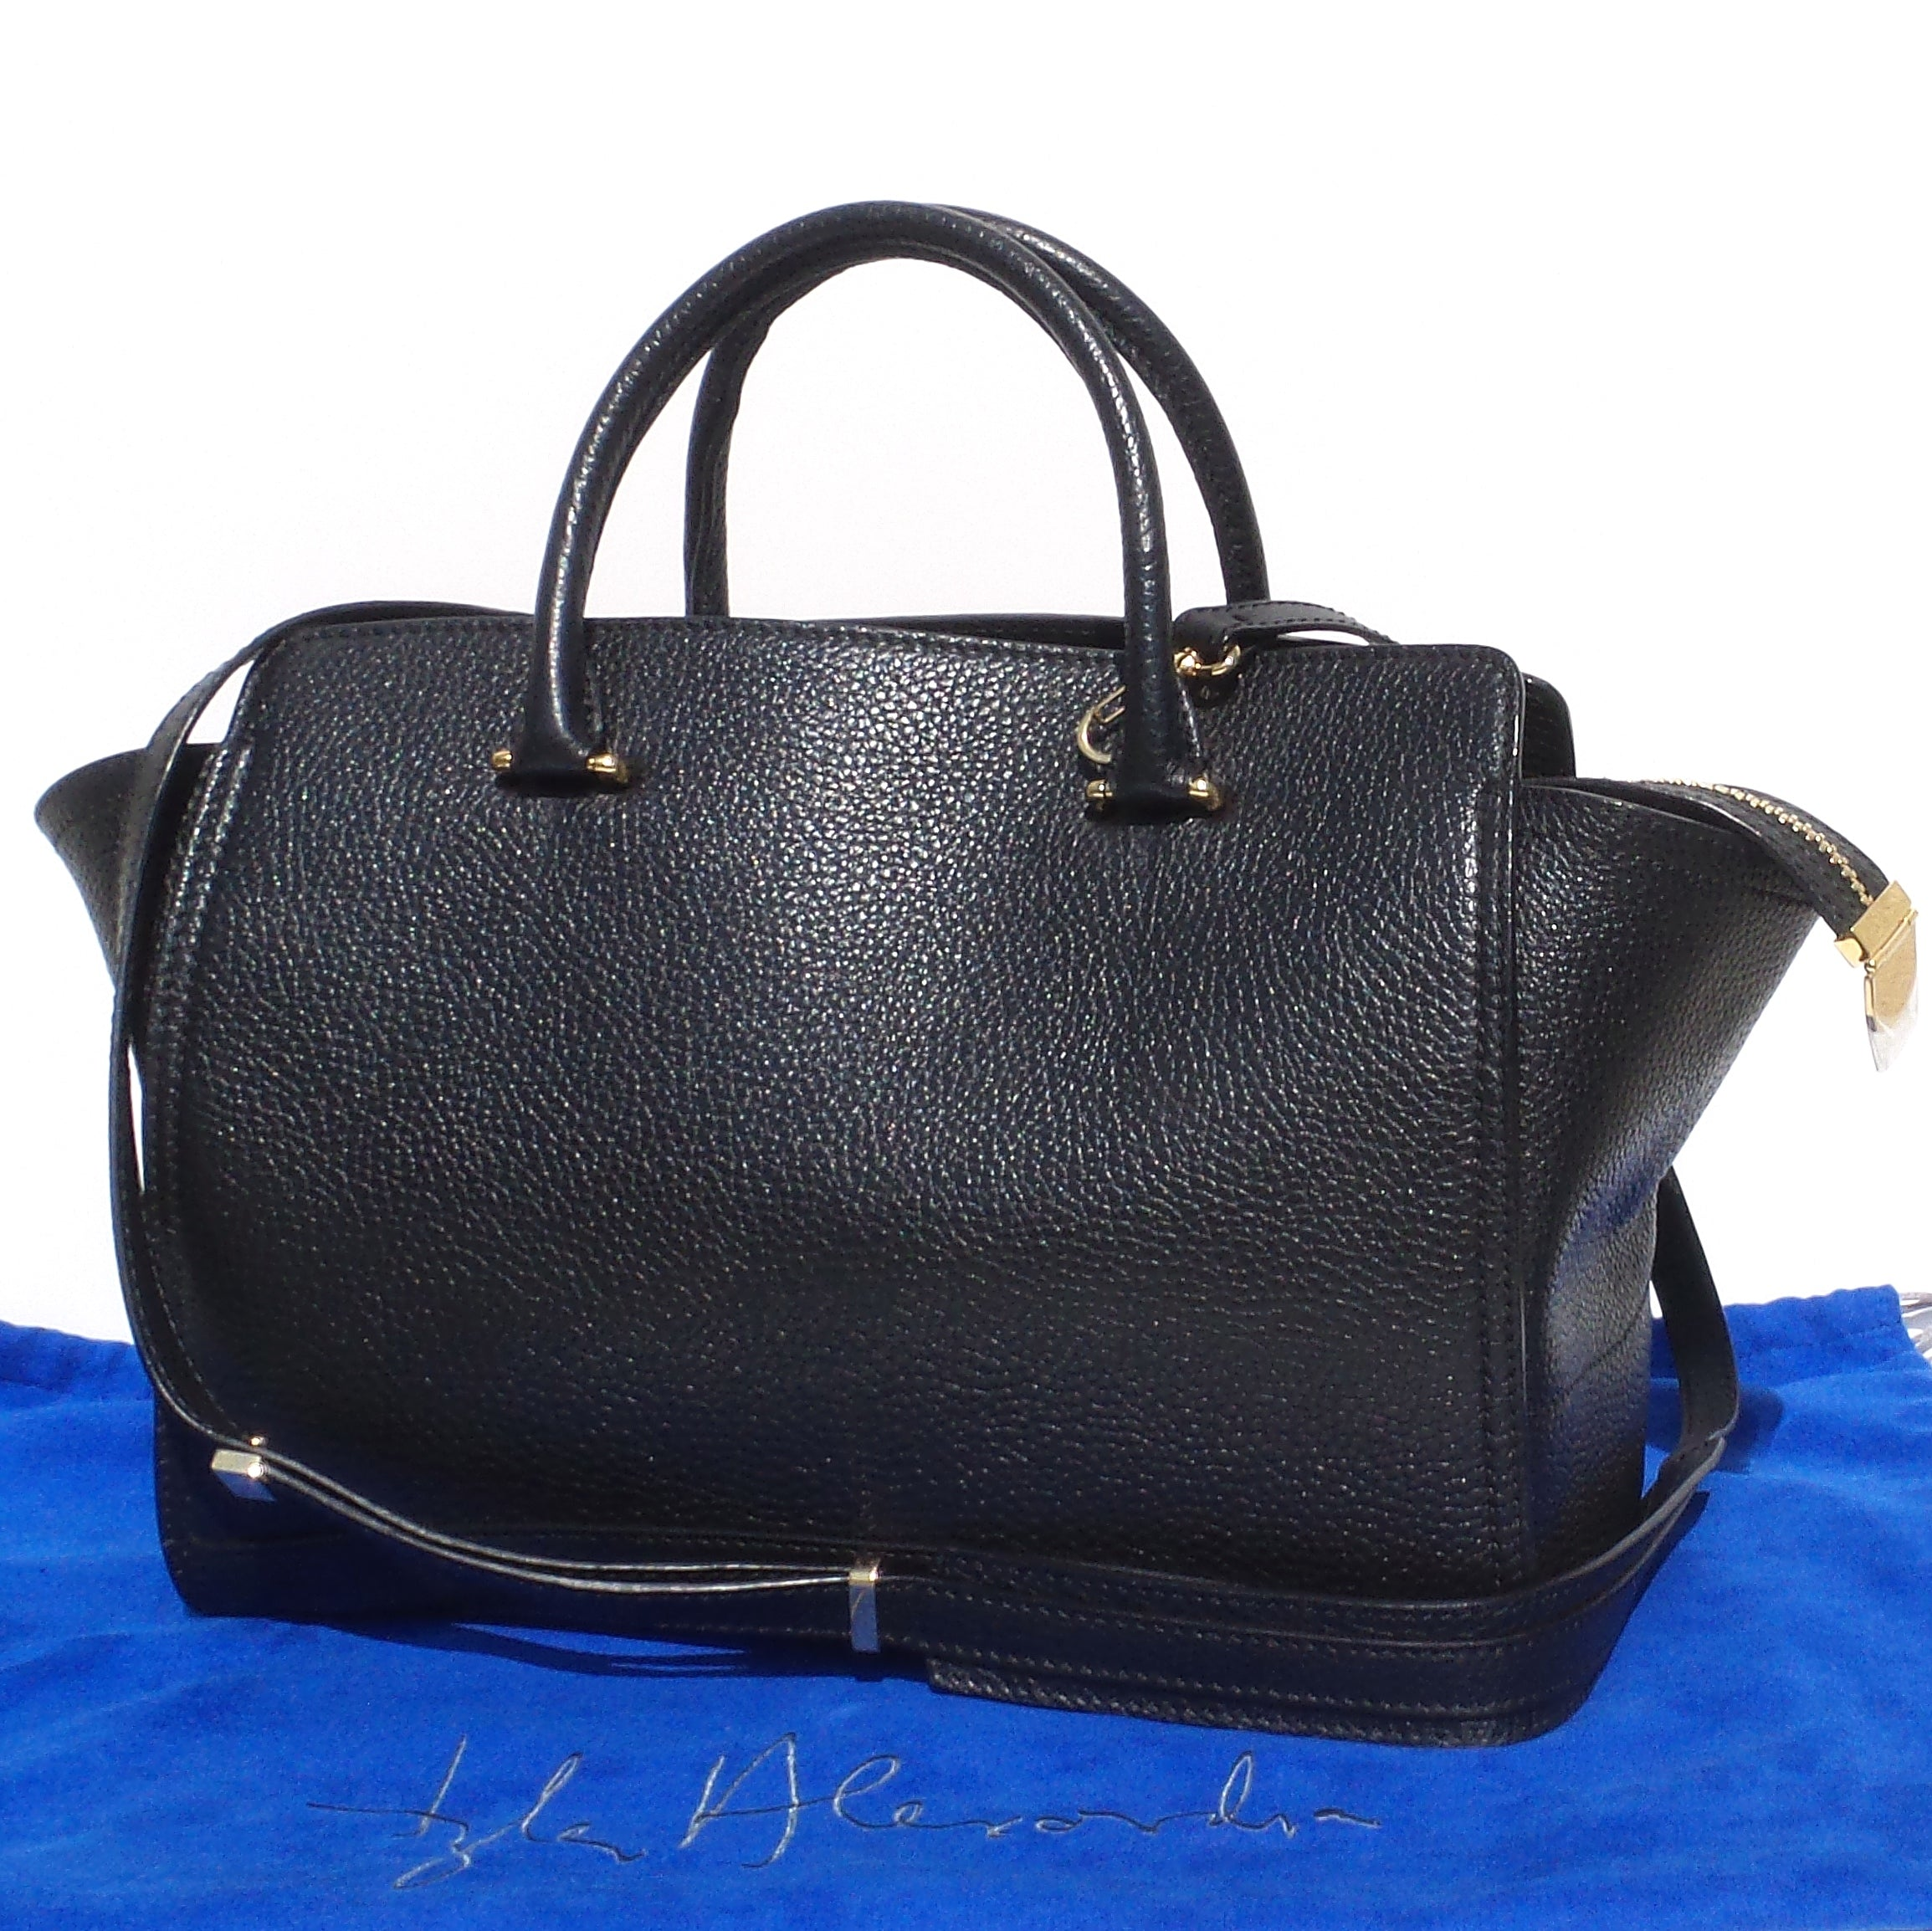 'Sold' TYLER ALEXANDRA ELLIS Black Grained Leather Gold HW Caroline Medium Tote Bag GUC